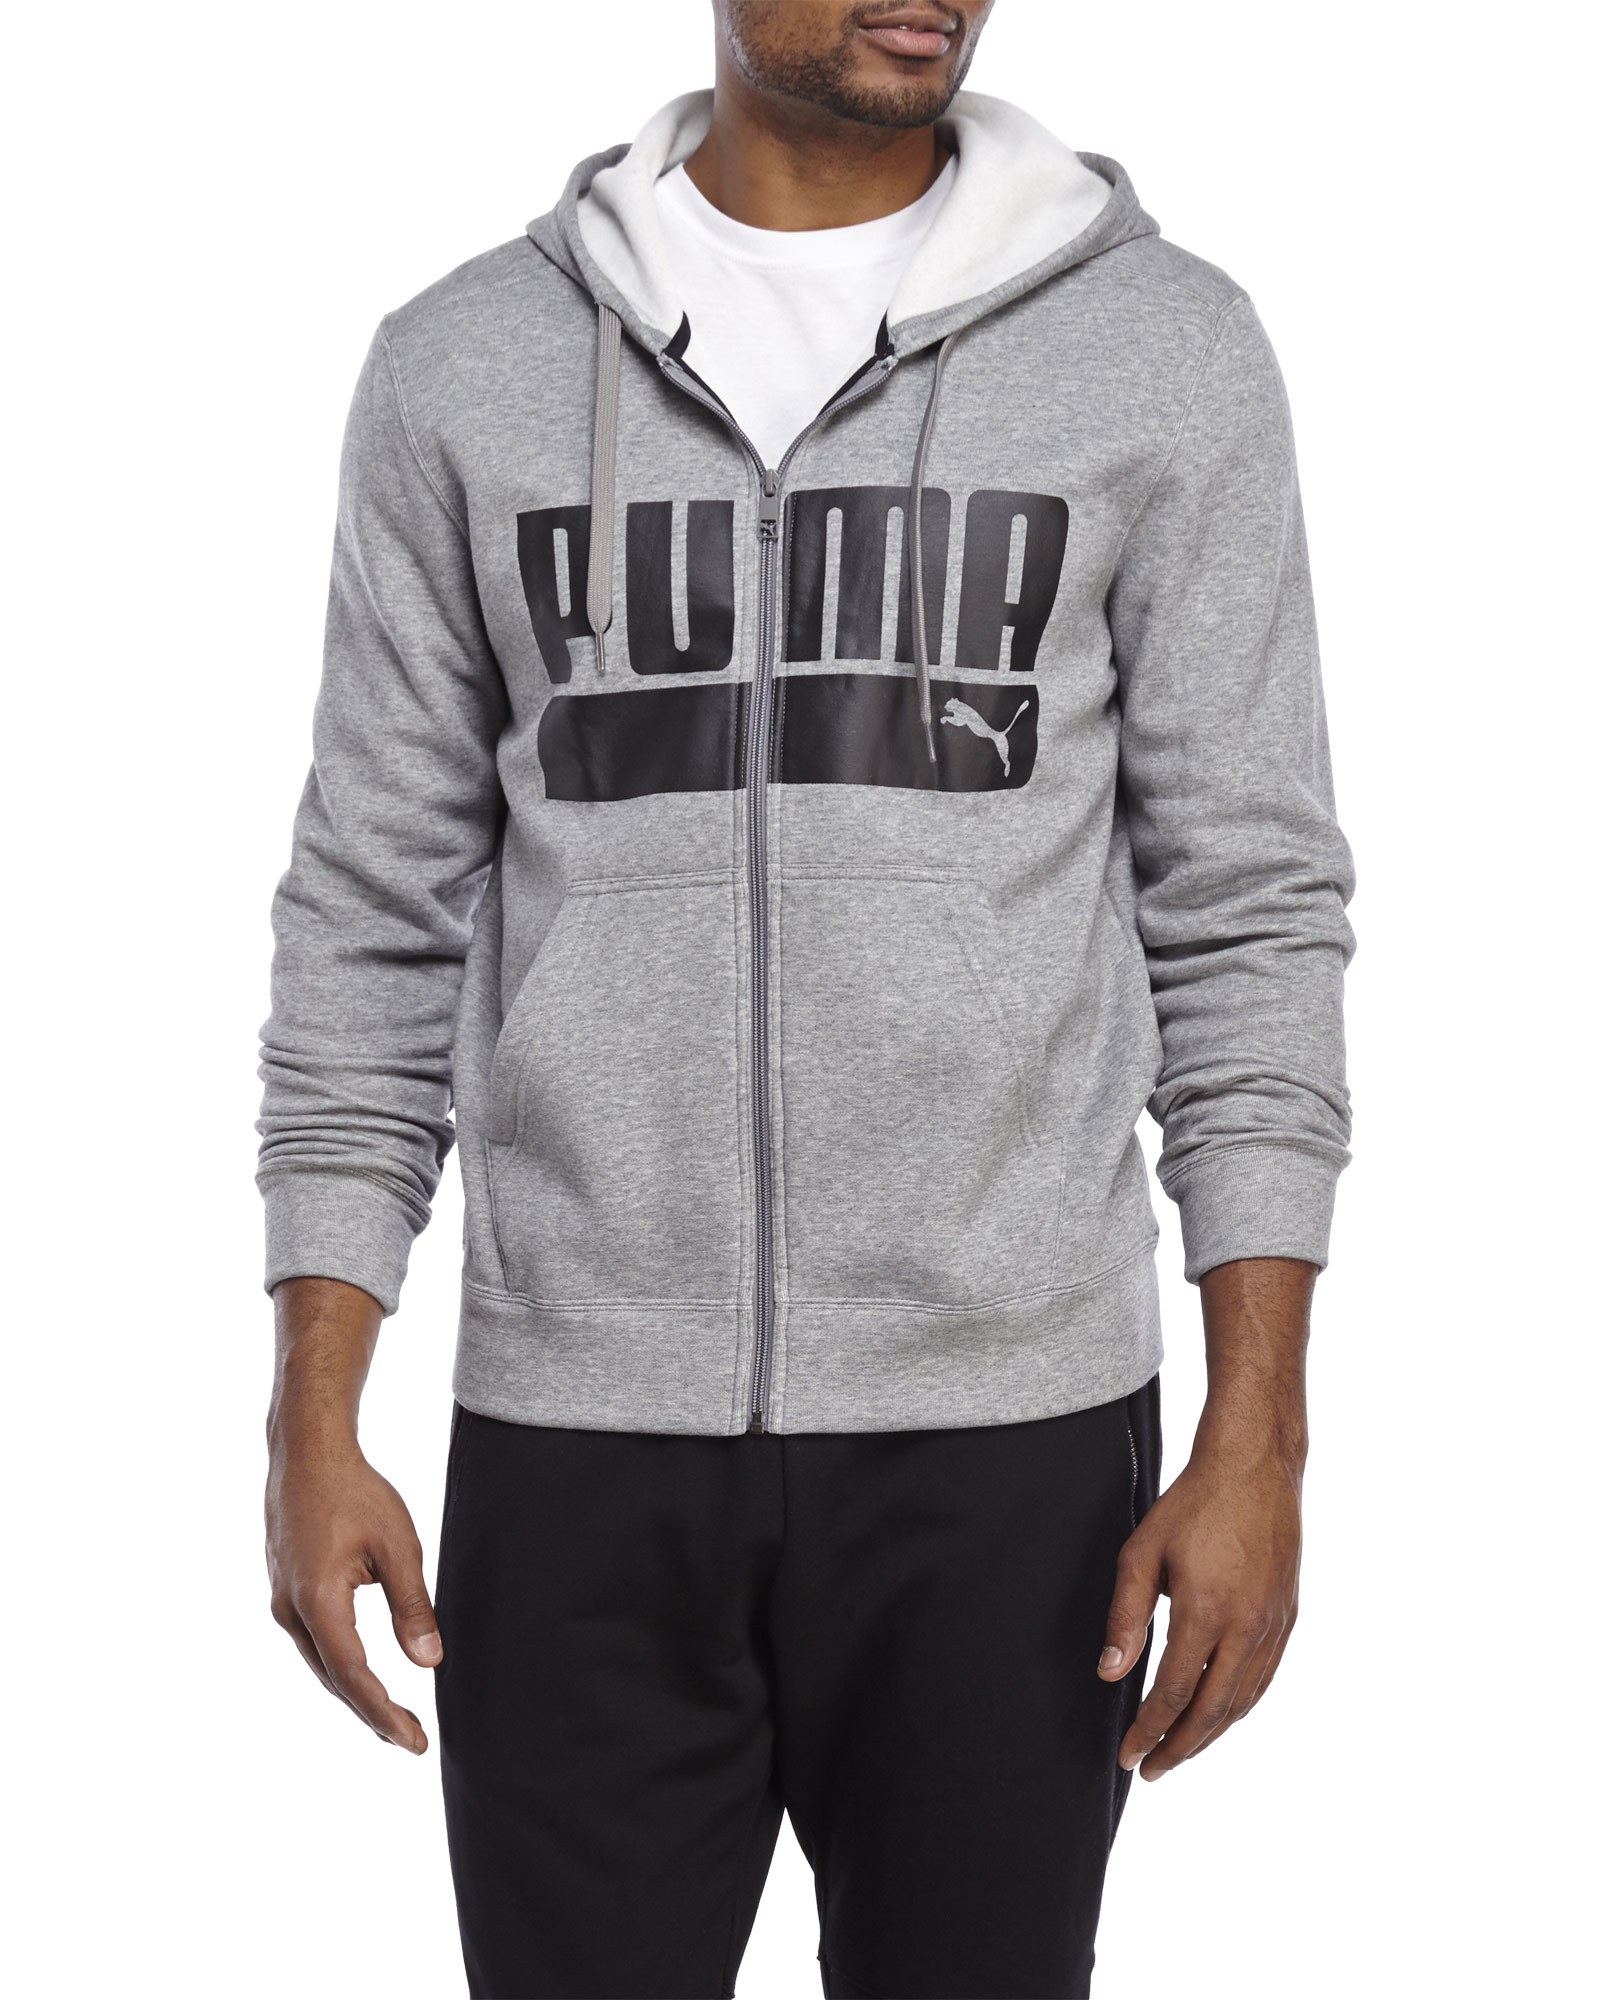 9b82d8a901a5 Gallery. Previously sold at  Century 21 · Men s Logo Sweatshirts Men s Zip  Up ...